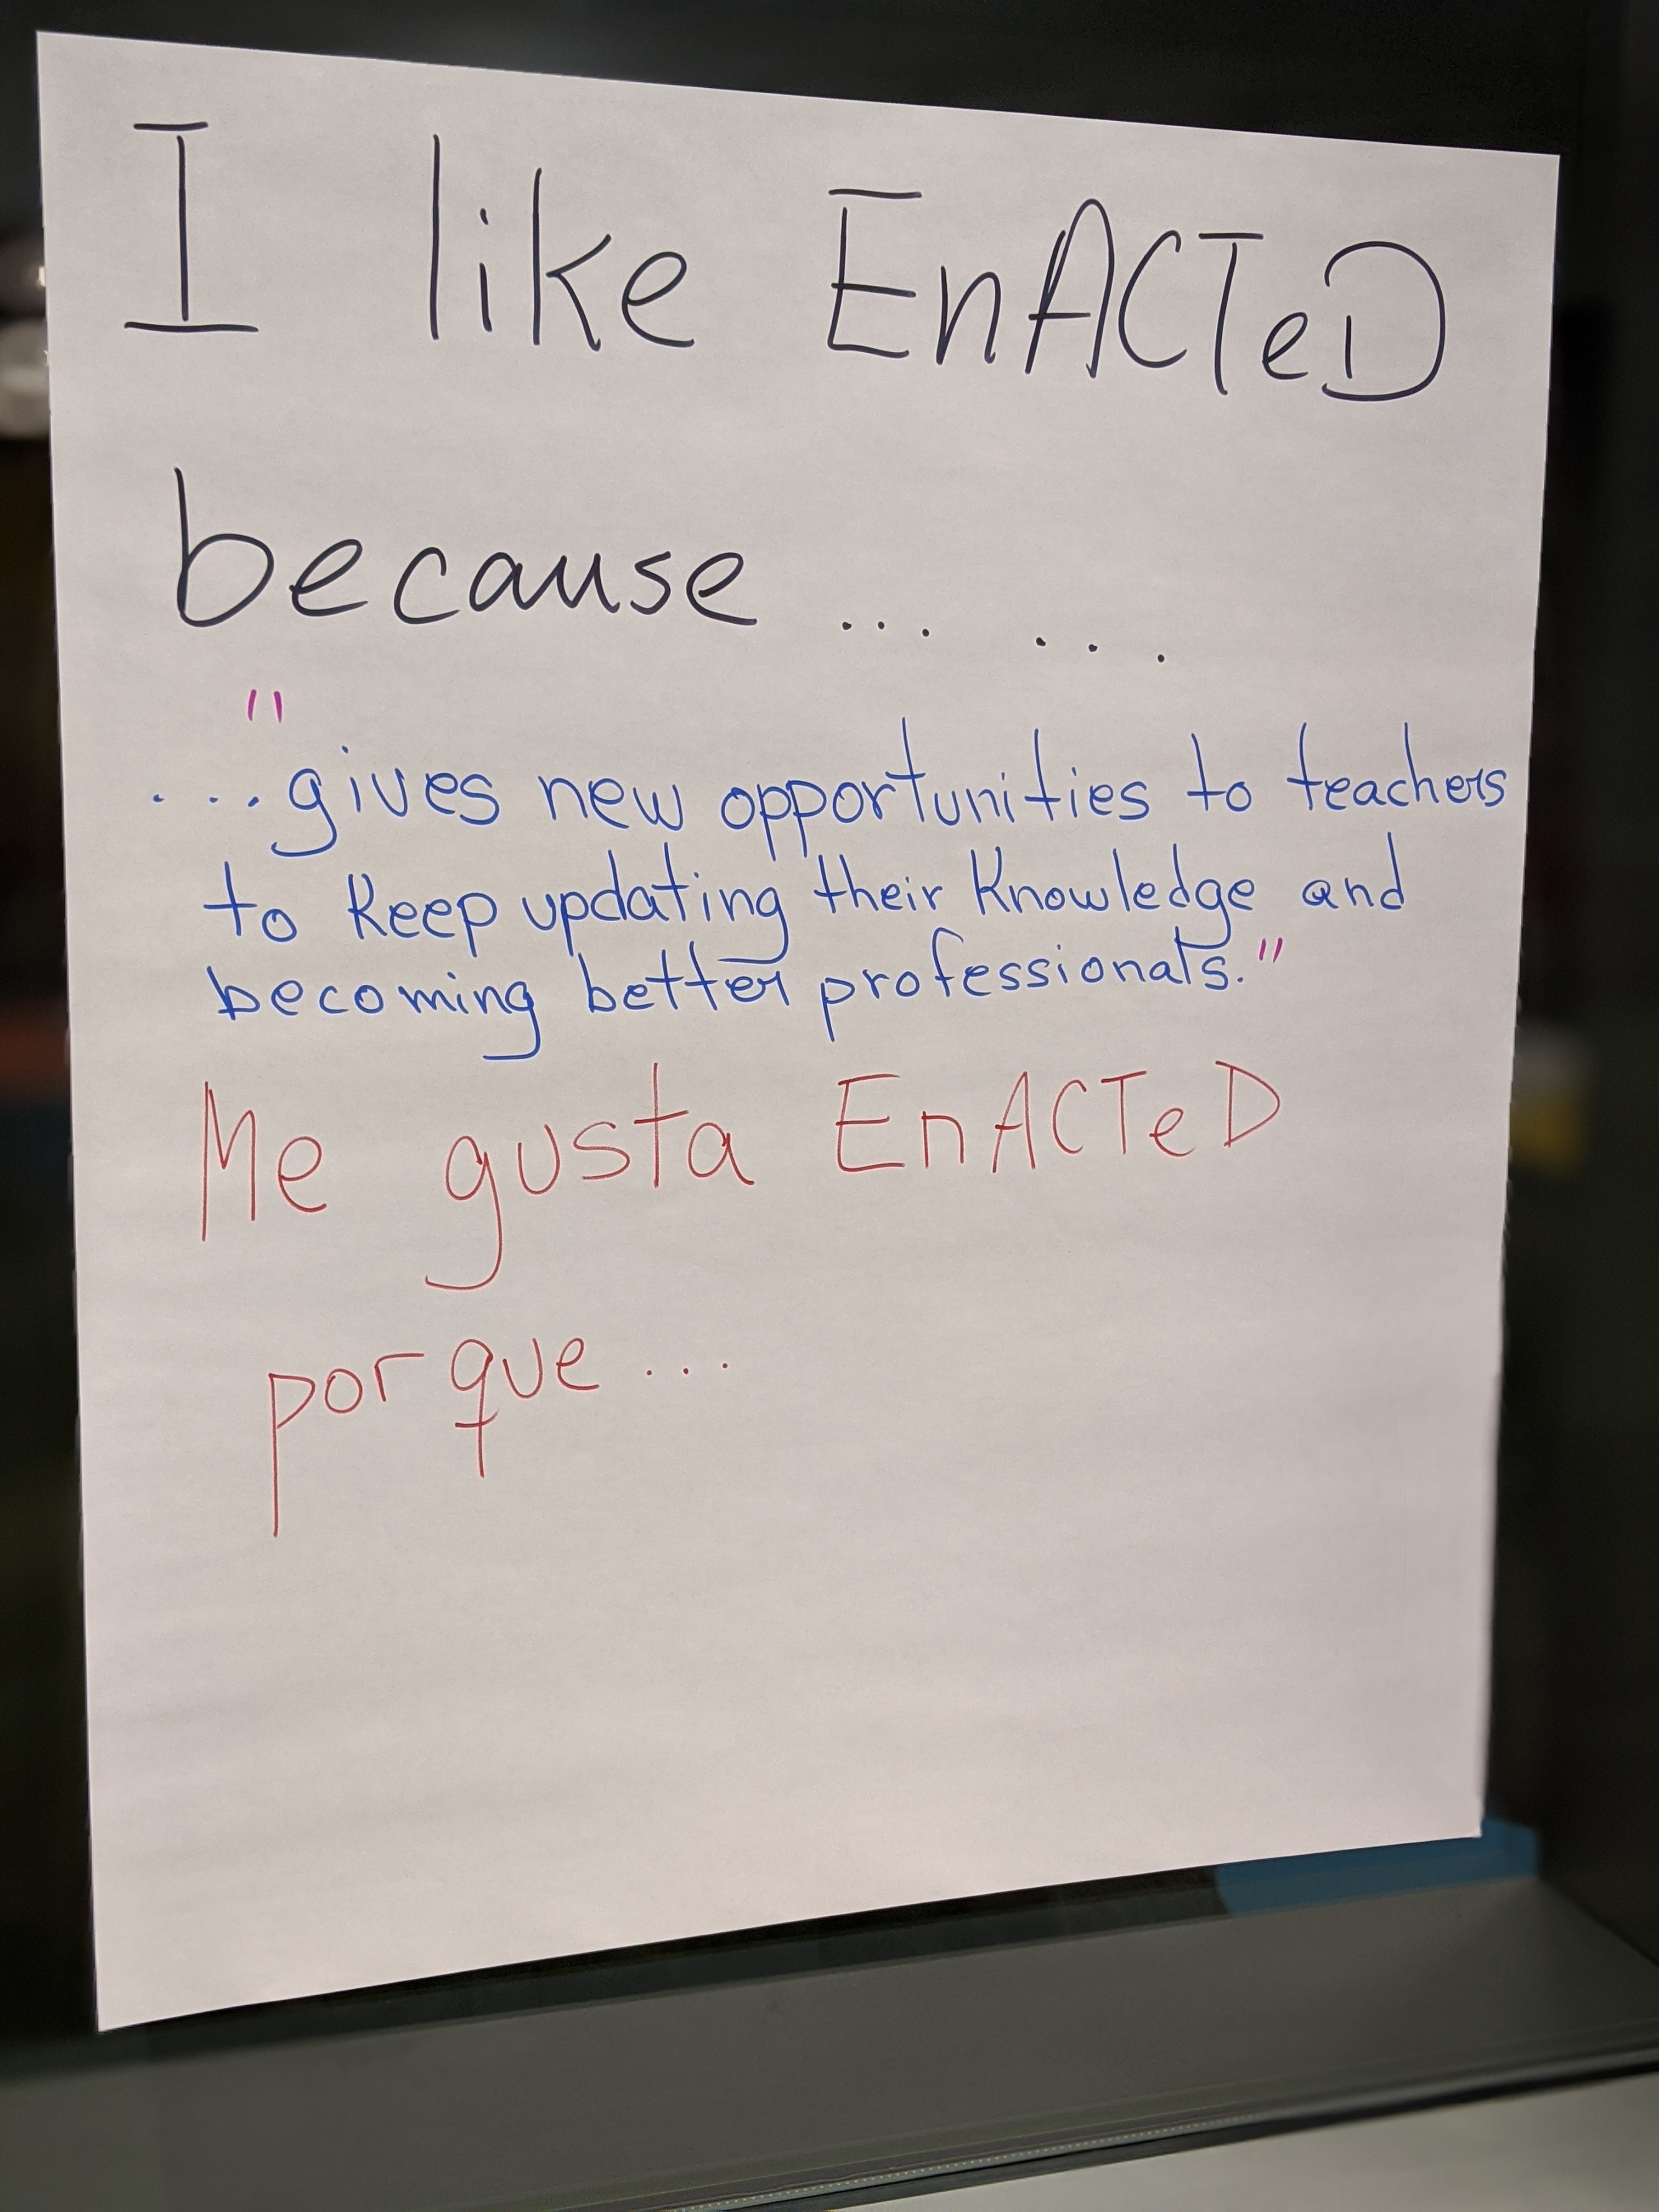 I Like EnACTeD Because....